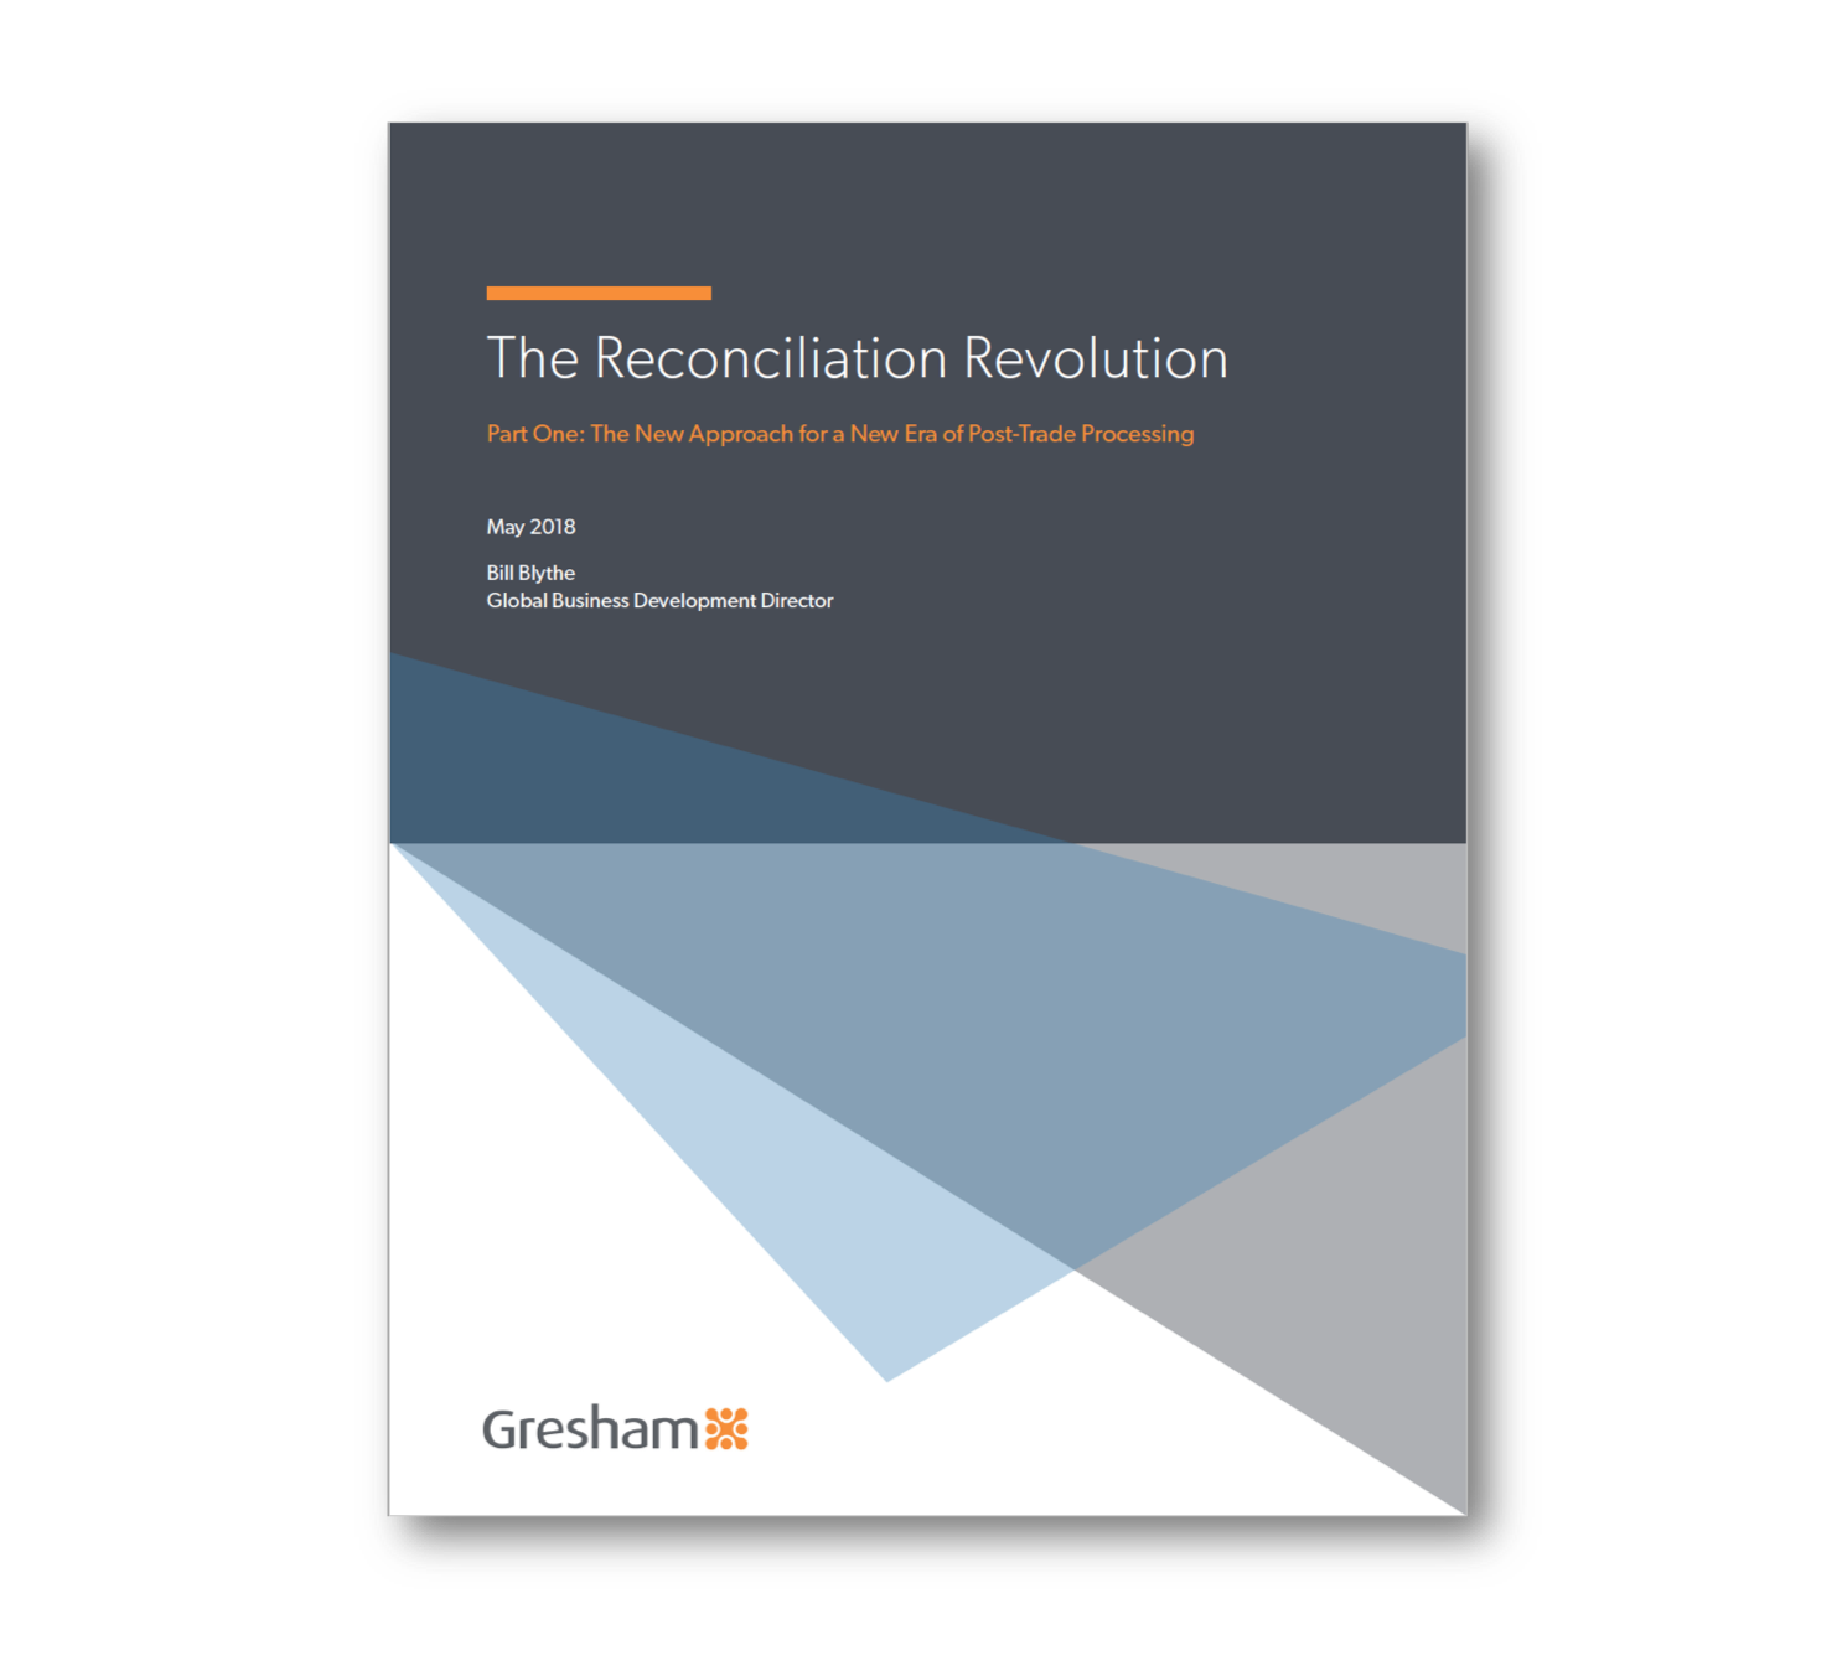 The Reconciliation Revolution - Part One